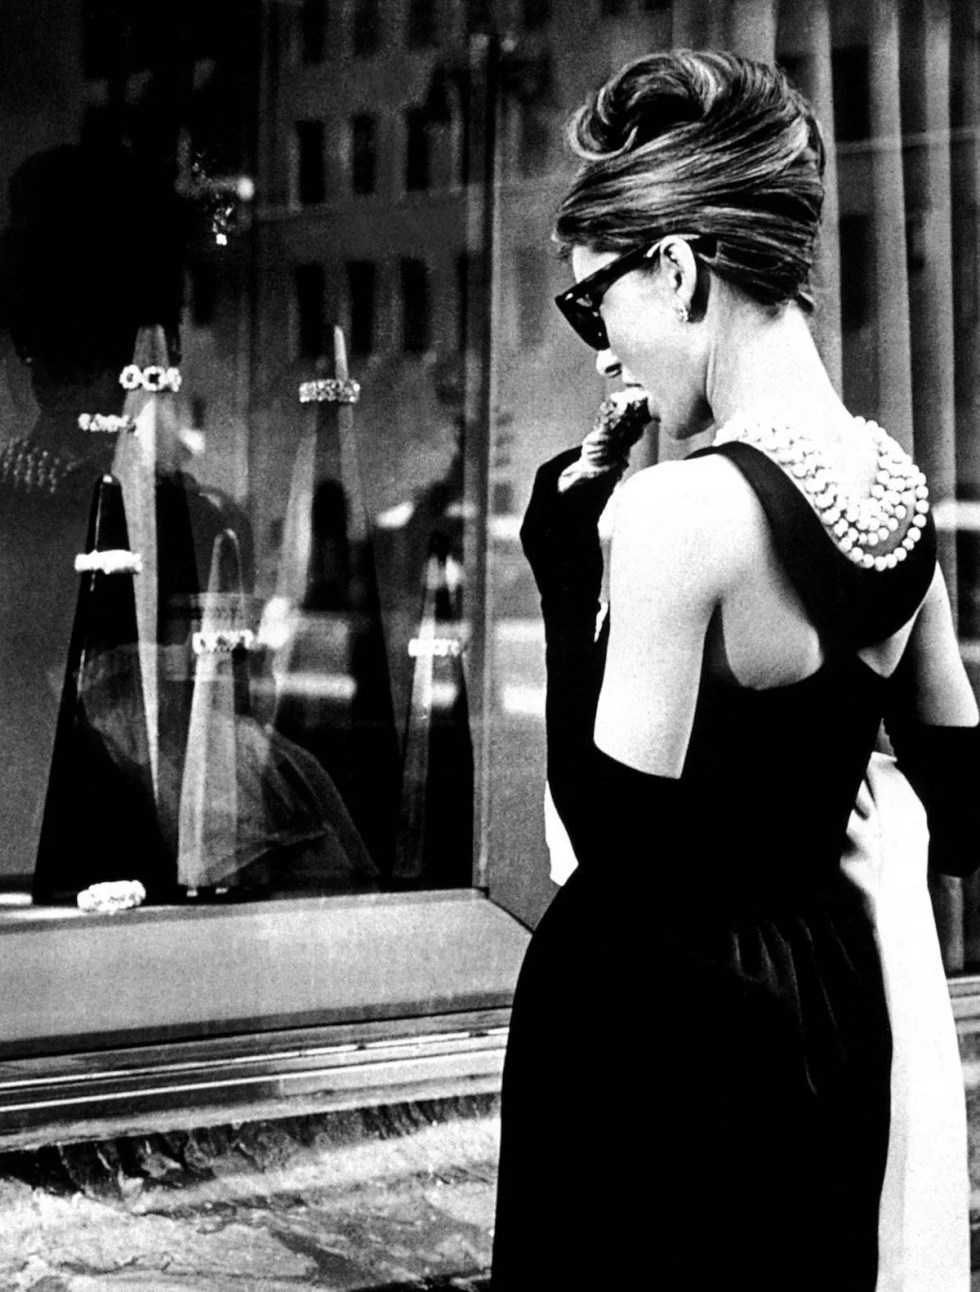 Hepburn's portrayal of Holly Golightly wearing Givenchy in Breakfast at Tiffany's movie.